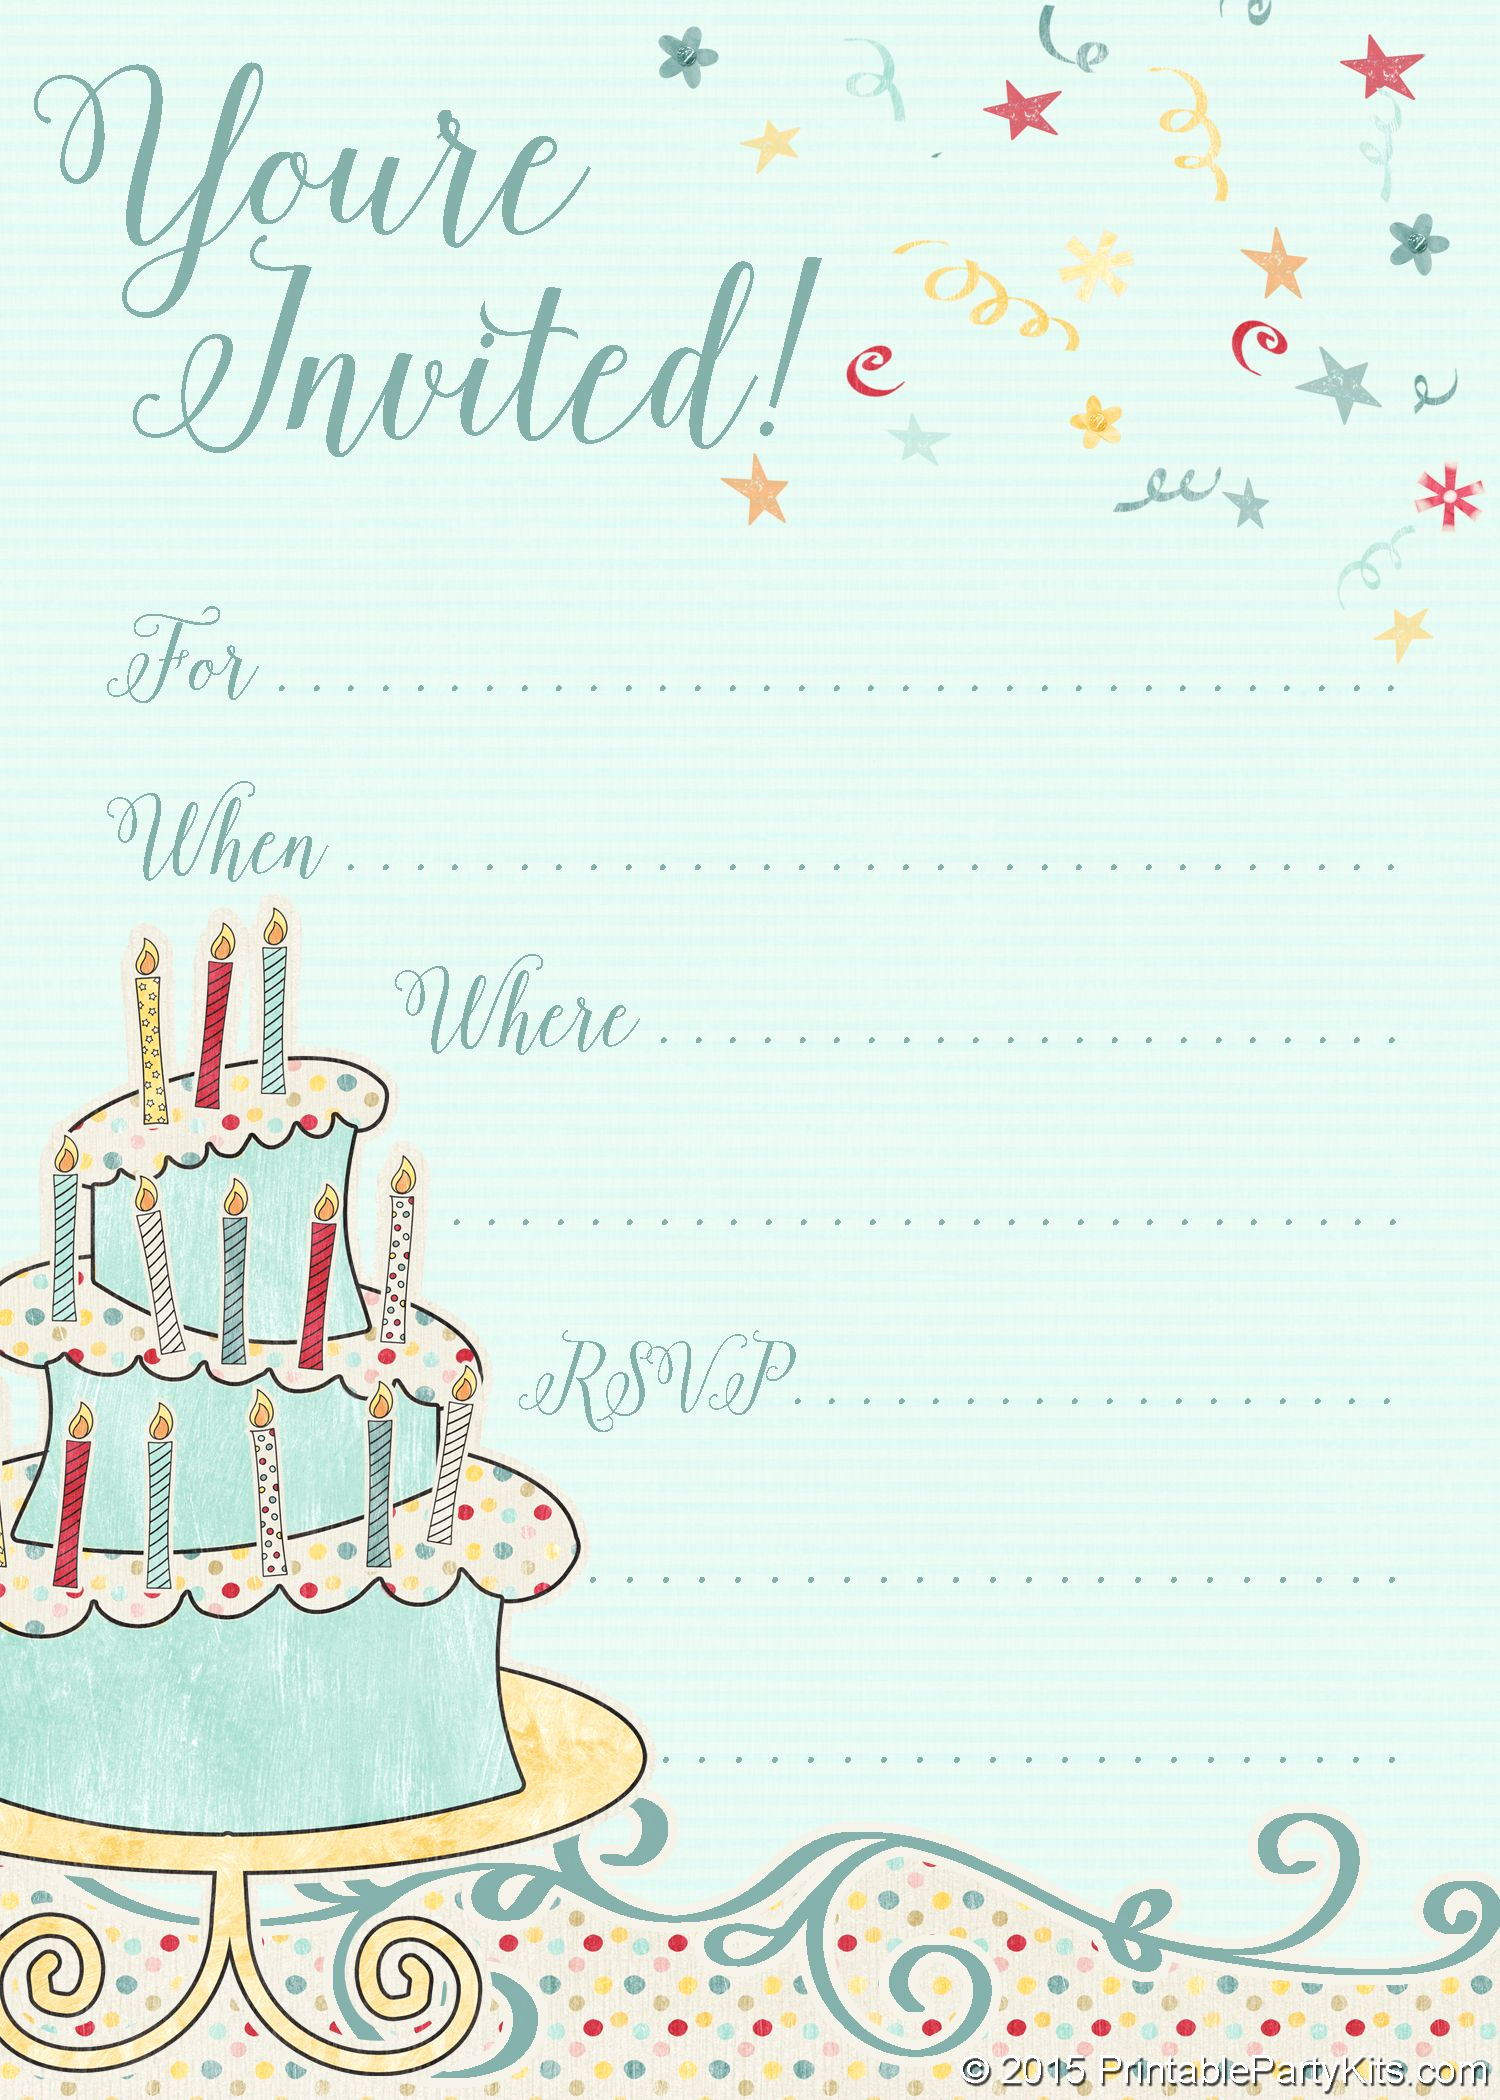 Free Invitation Template Printable Fresh Free Printable Whimsical Birthday Party Invitation